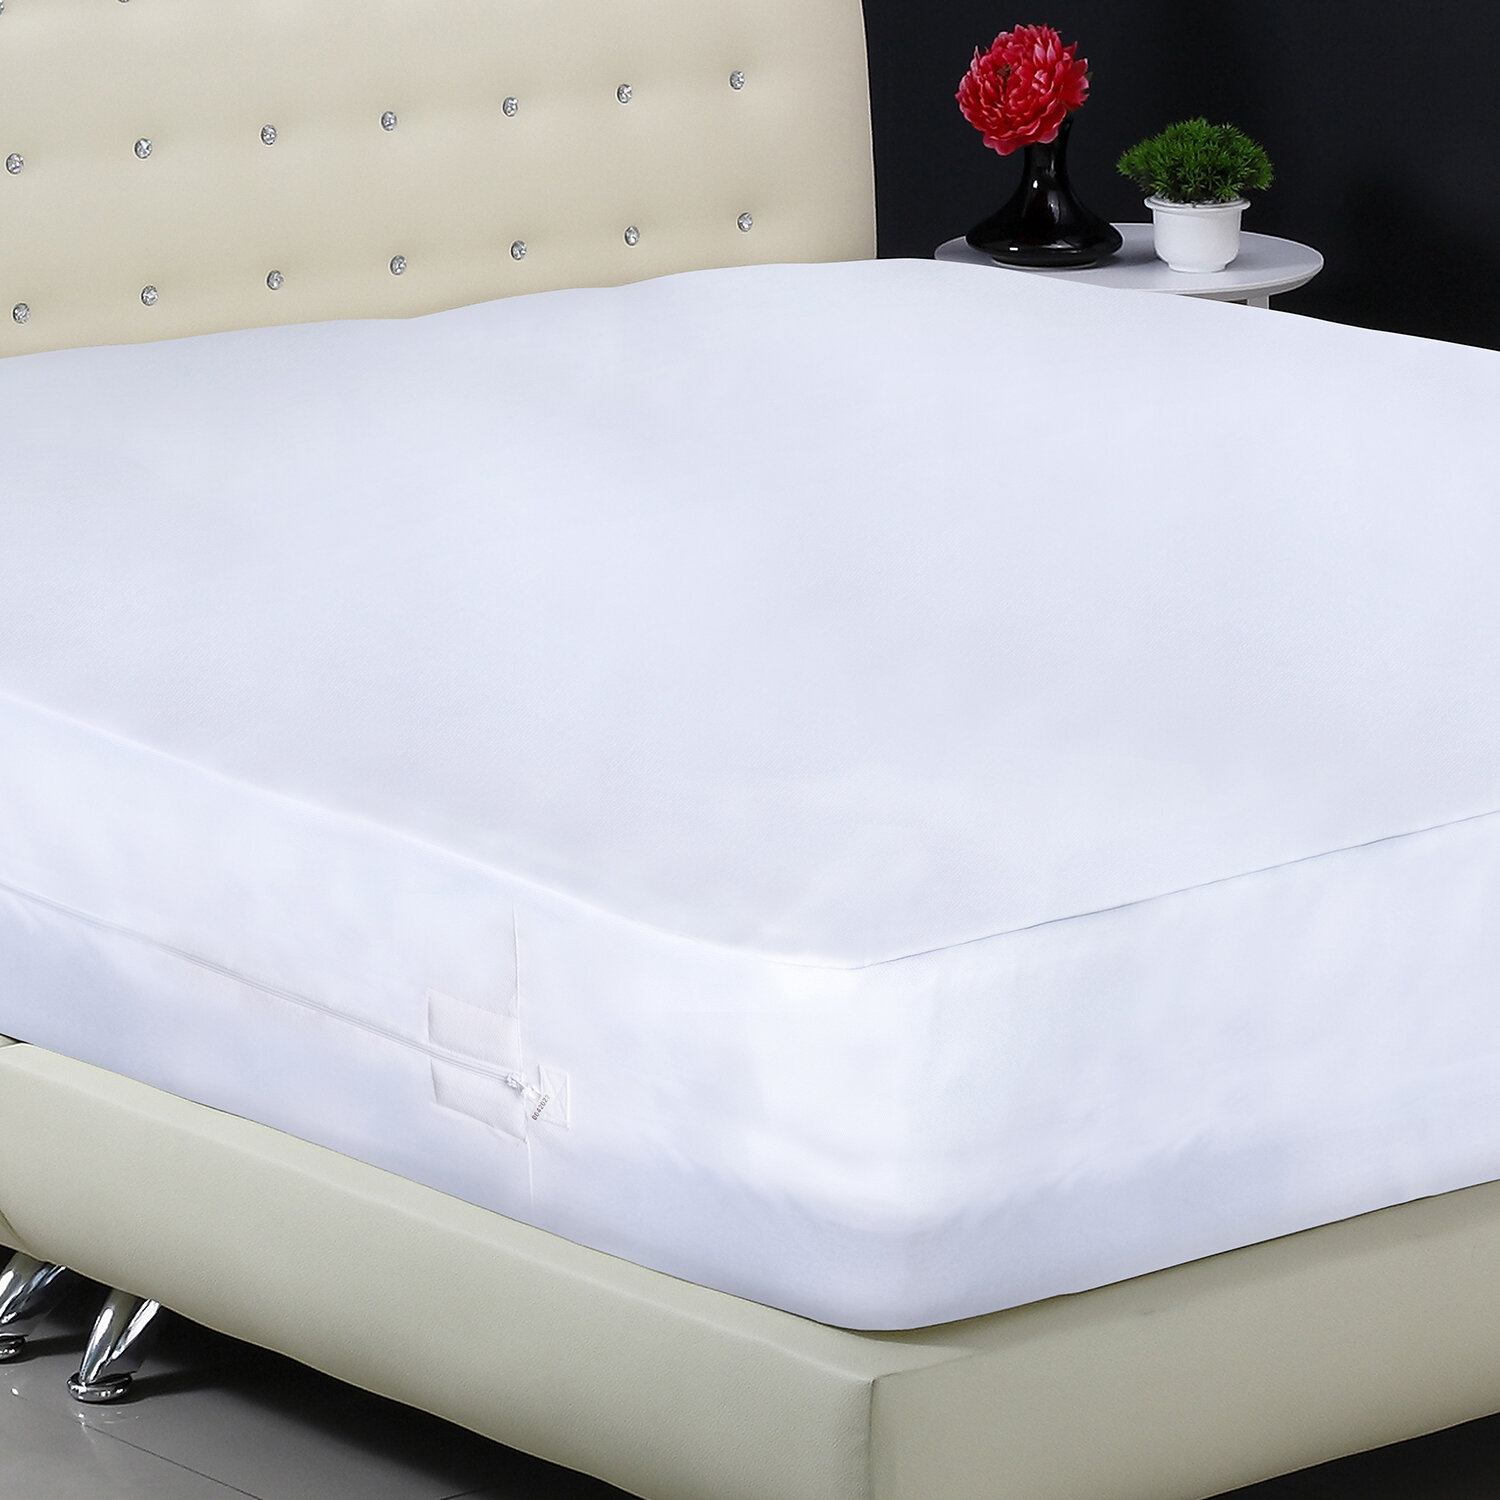 Ordinaire Protect A Bed Aller Zip Smooth Anti Allergy And Bed Bug Proof  Hypoallergenic Waterproof Mattress Protector U0026 Reviews | Wayfair